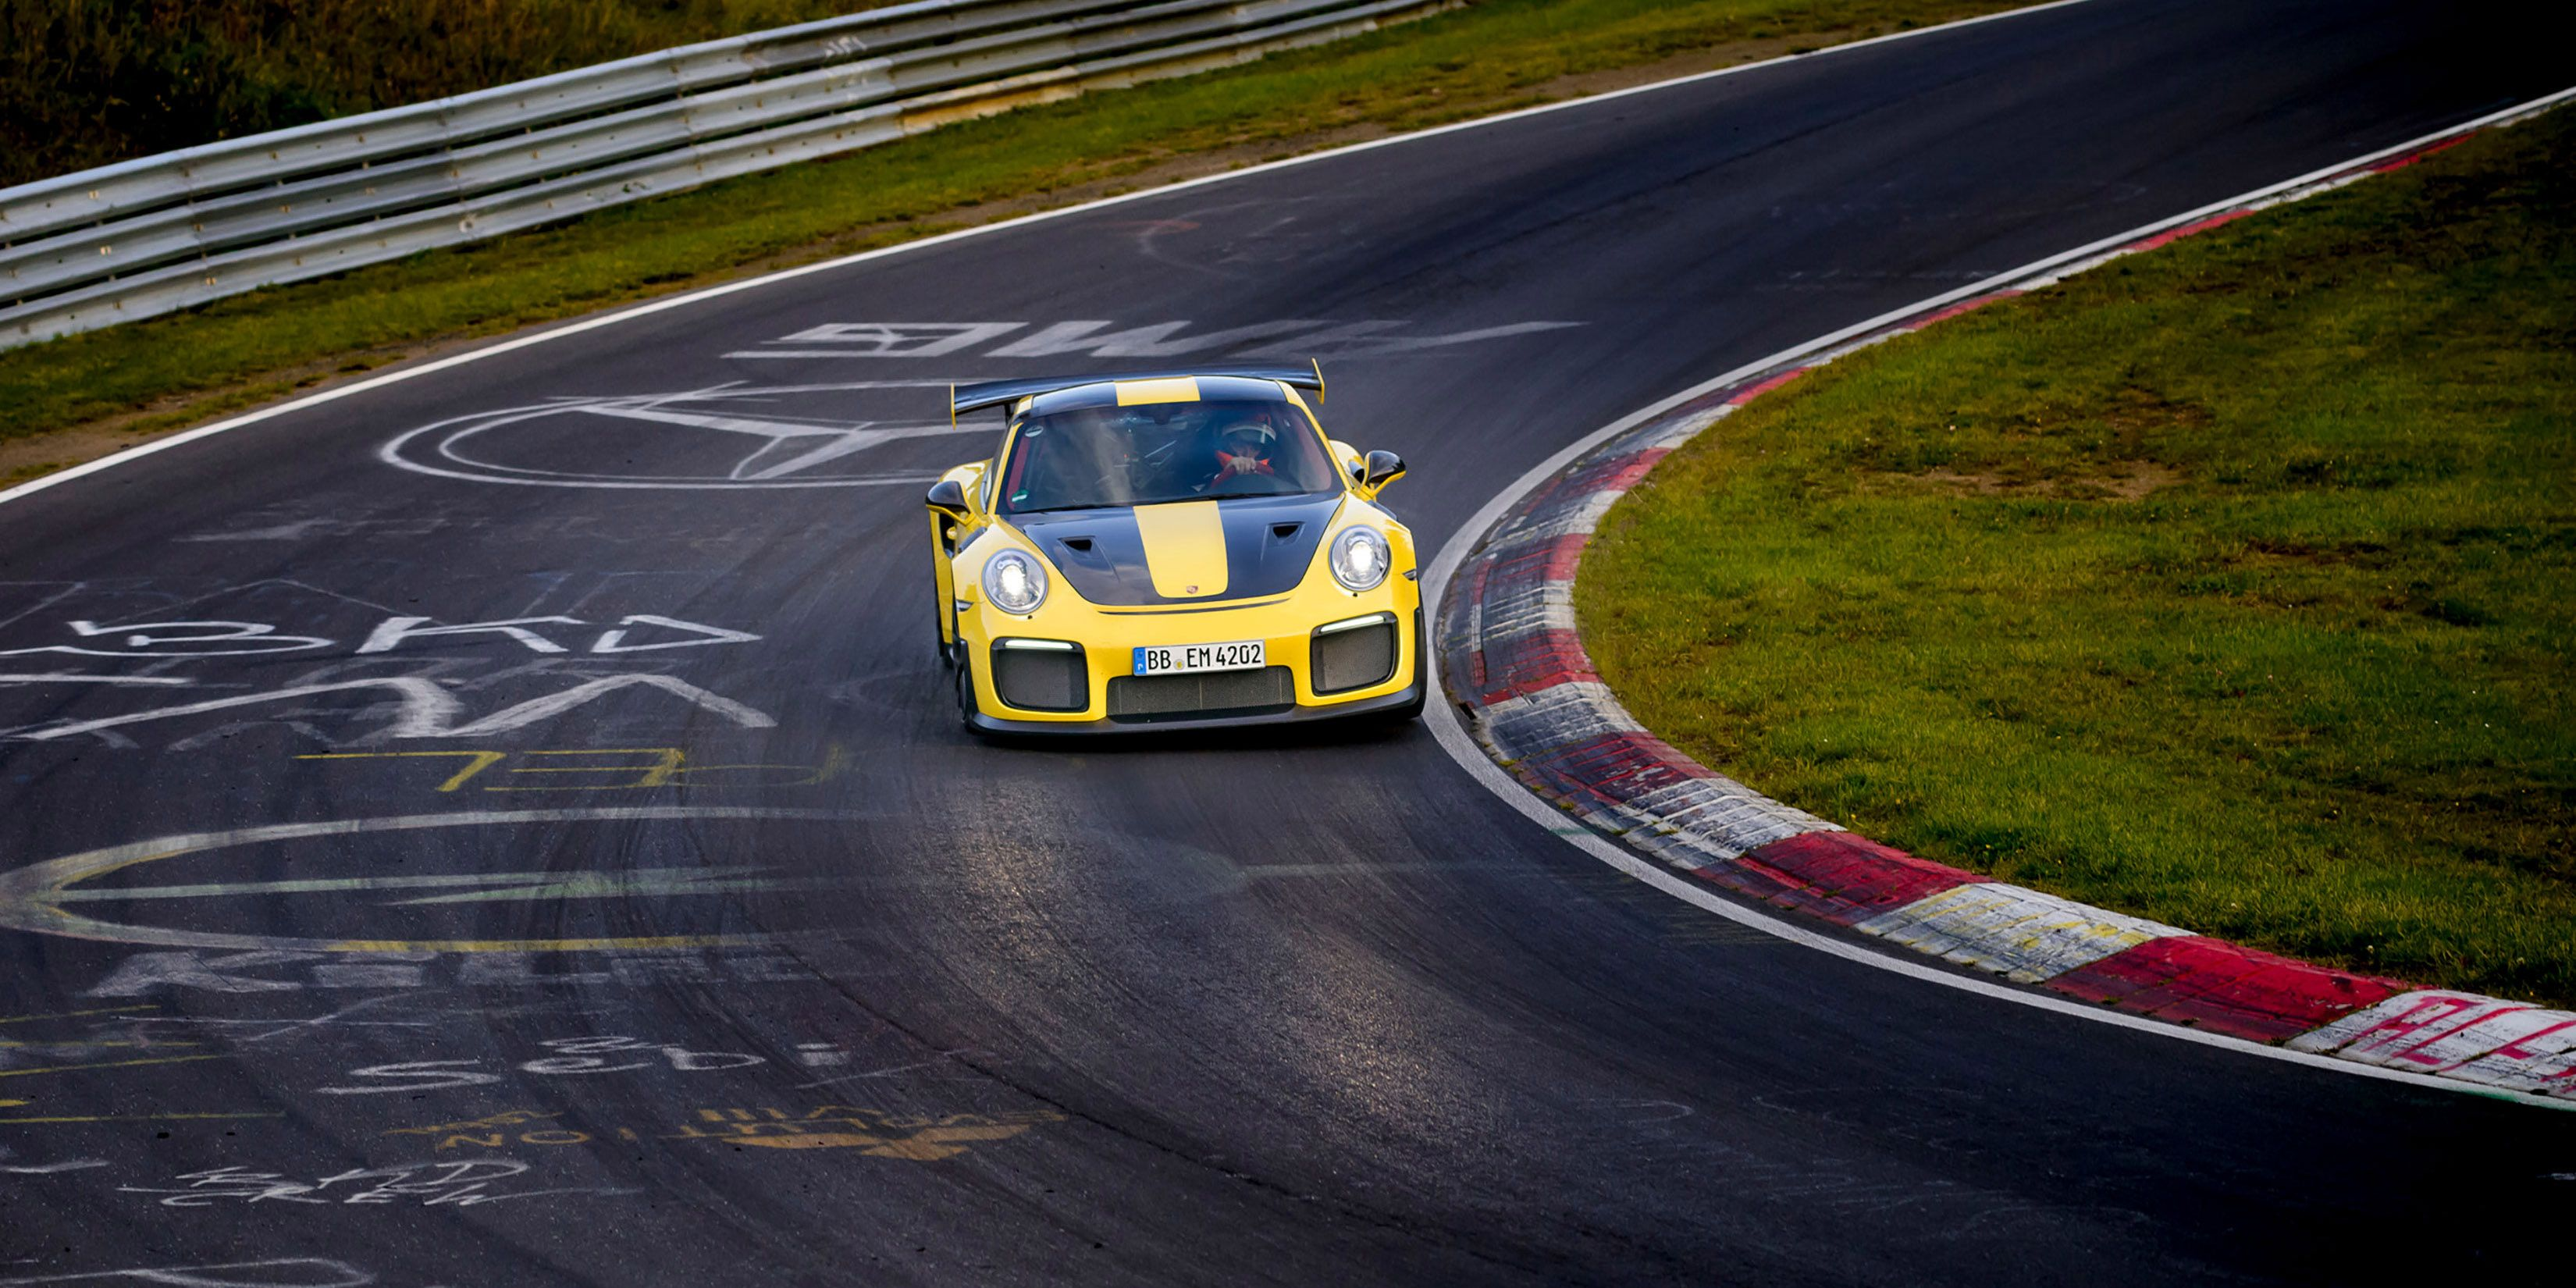 The Porsche 911 Gt2 Rs Just Obliterated Lap Record At Nurburgring